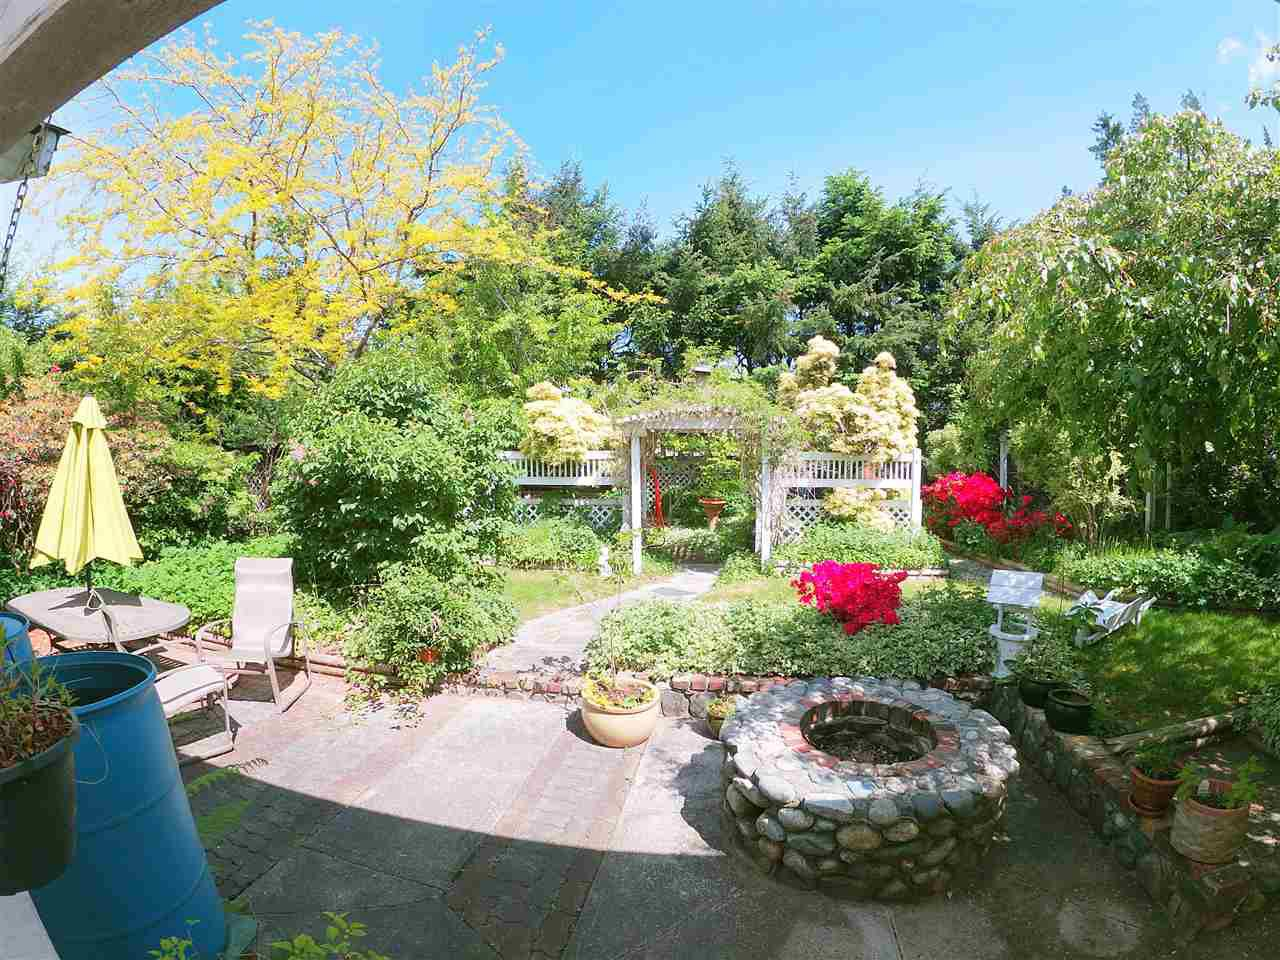 Main Photo: 5702 MEDUSA Street in Sechelt: Sechelt District House for sale (Sunshine Coast)  : MLS®# R2323721